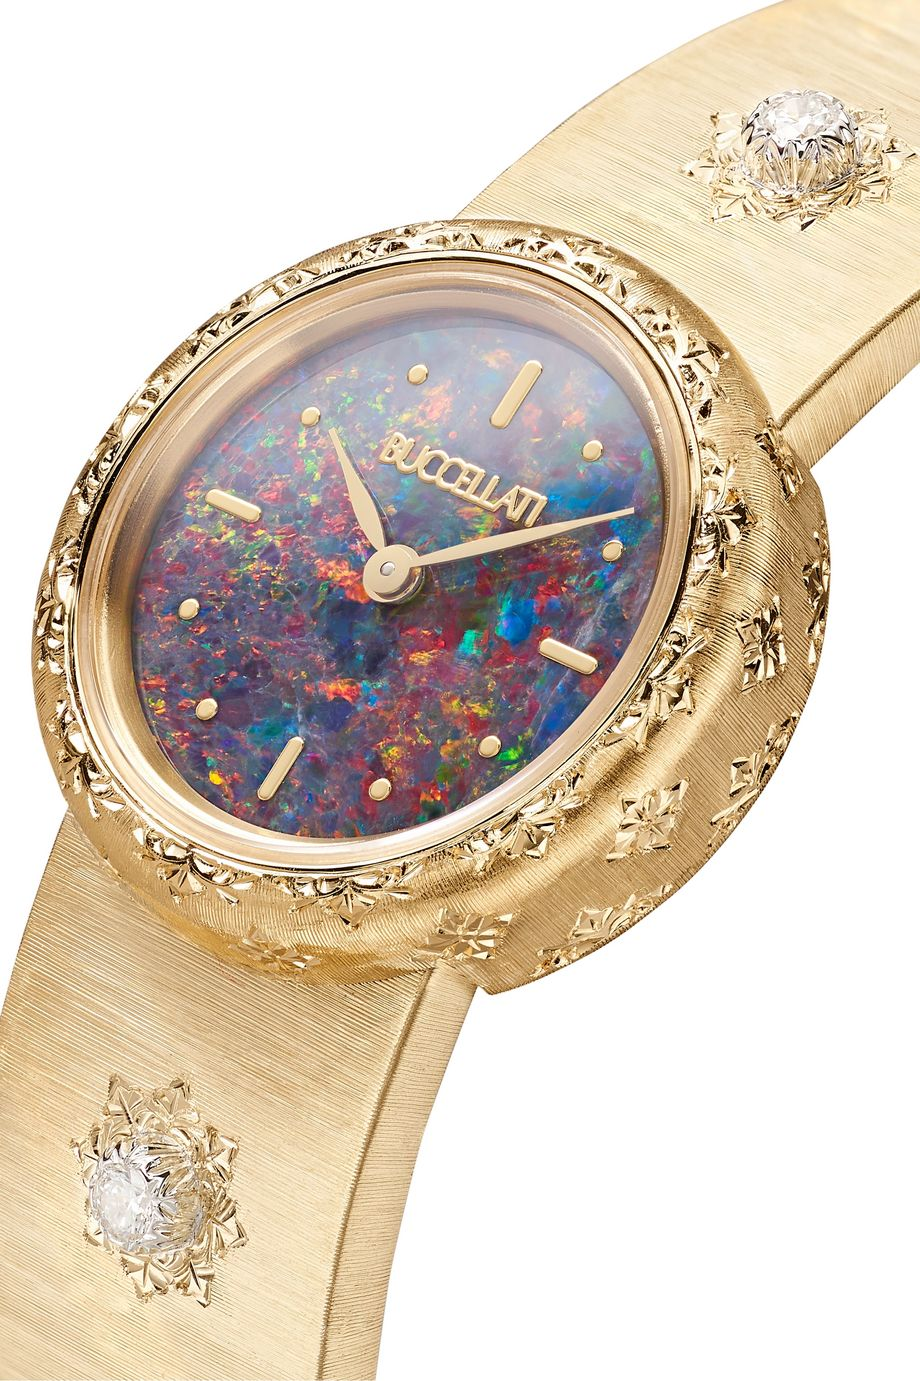 Buccellati Macri 24mm 18-karat gold, opal and diamond watch